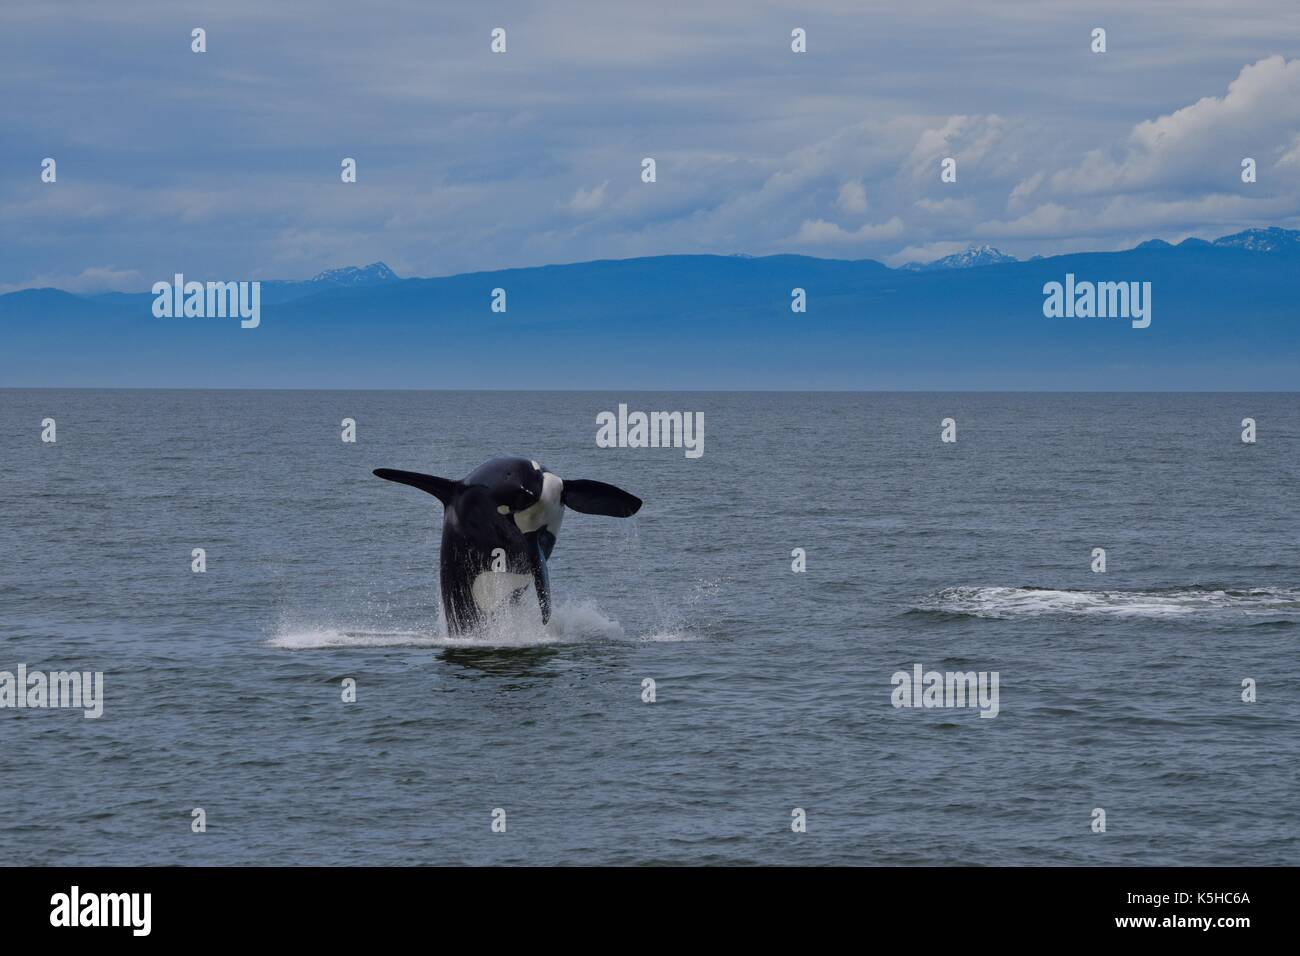 Jumping Killer Whale - Stock Image